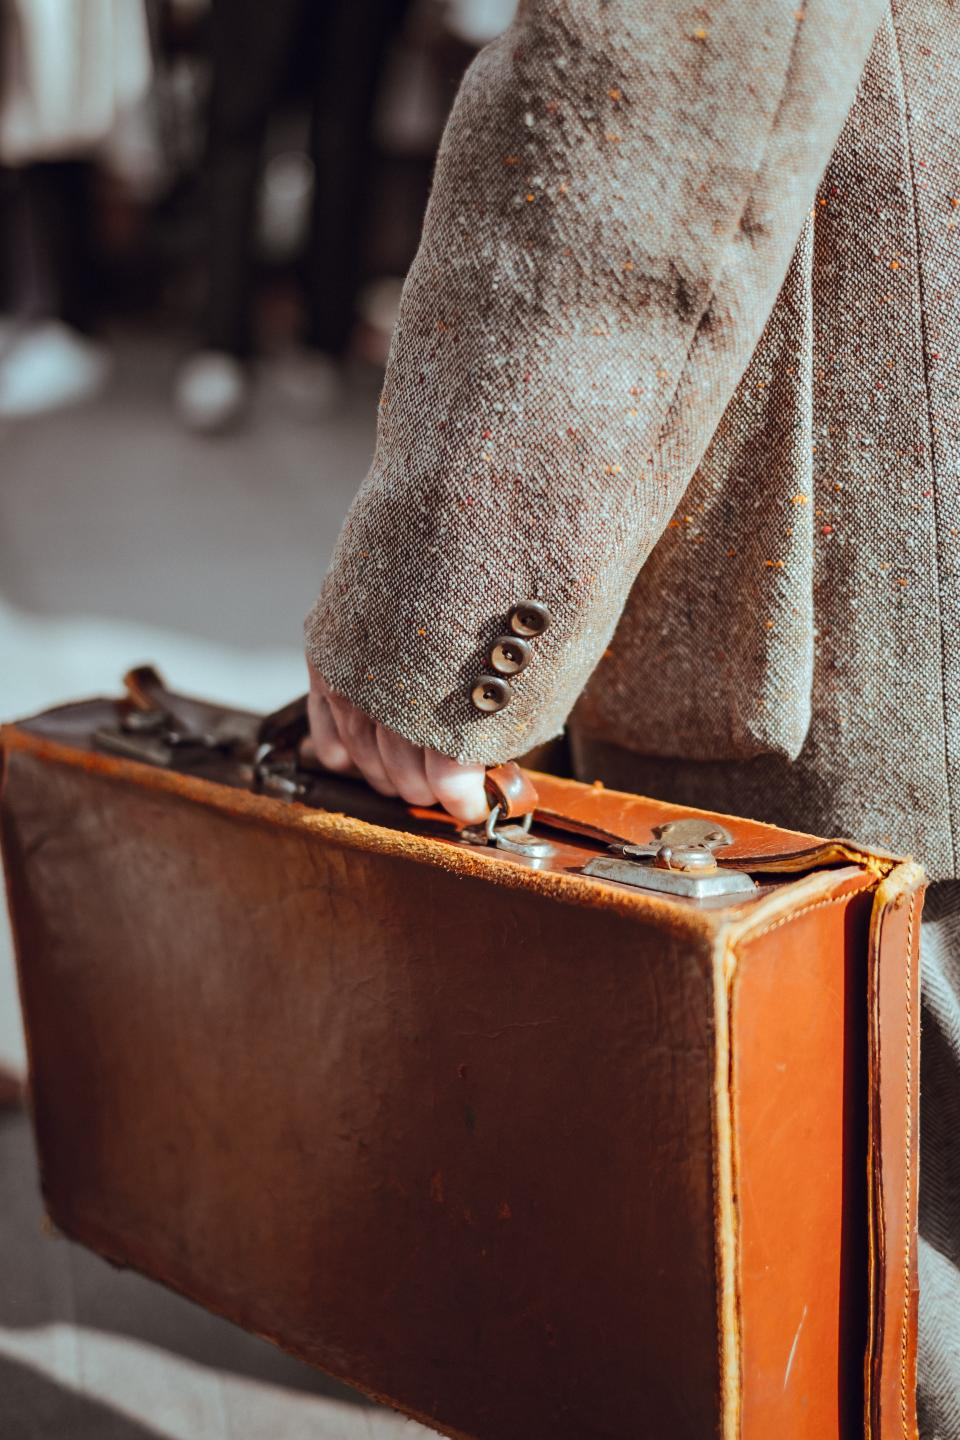 Free stock photo of brown leather